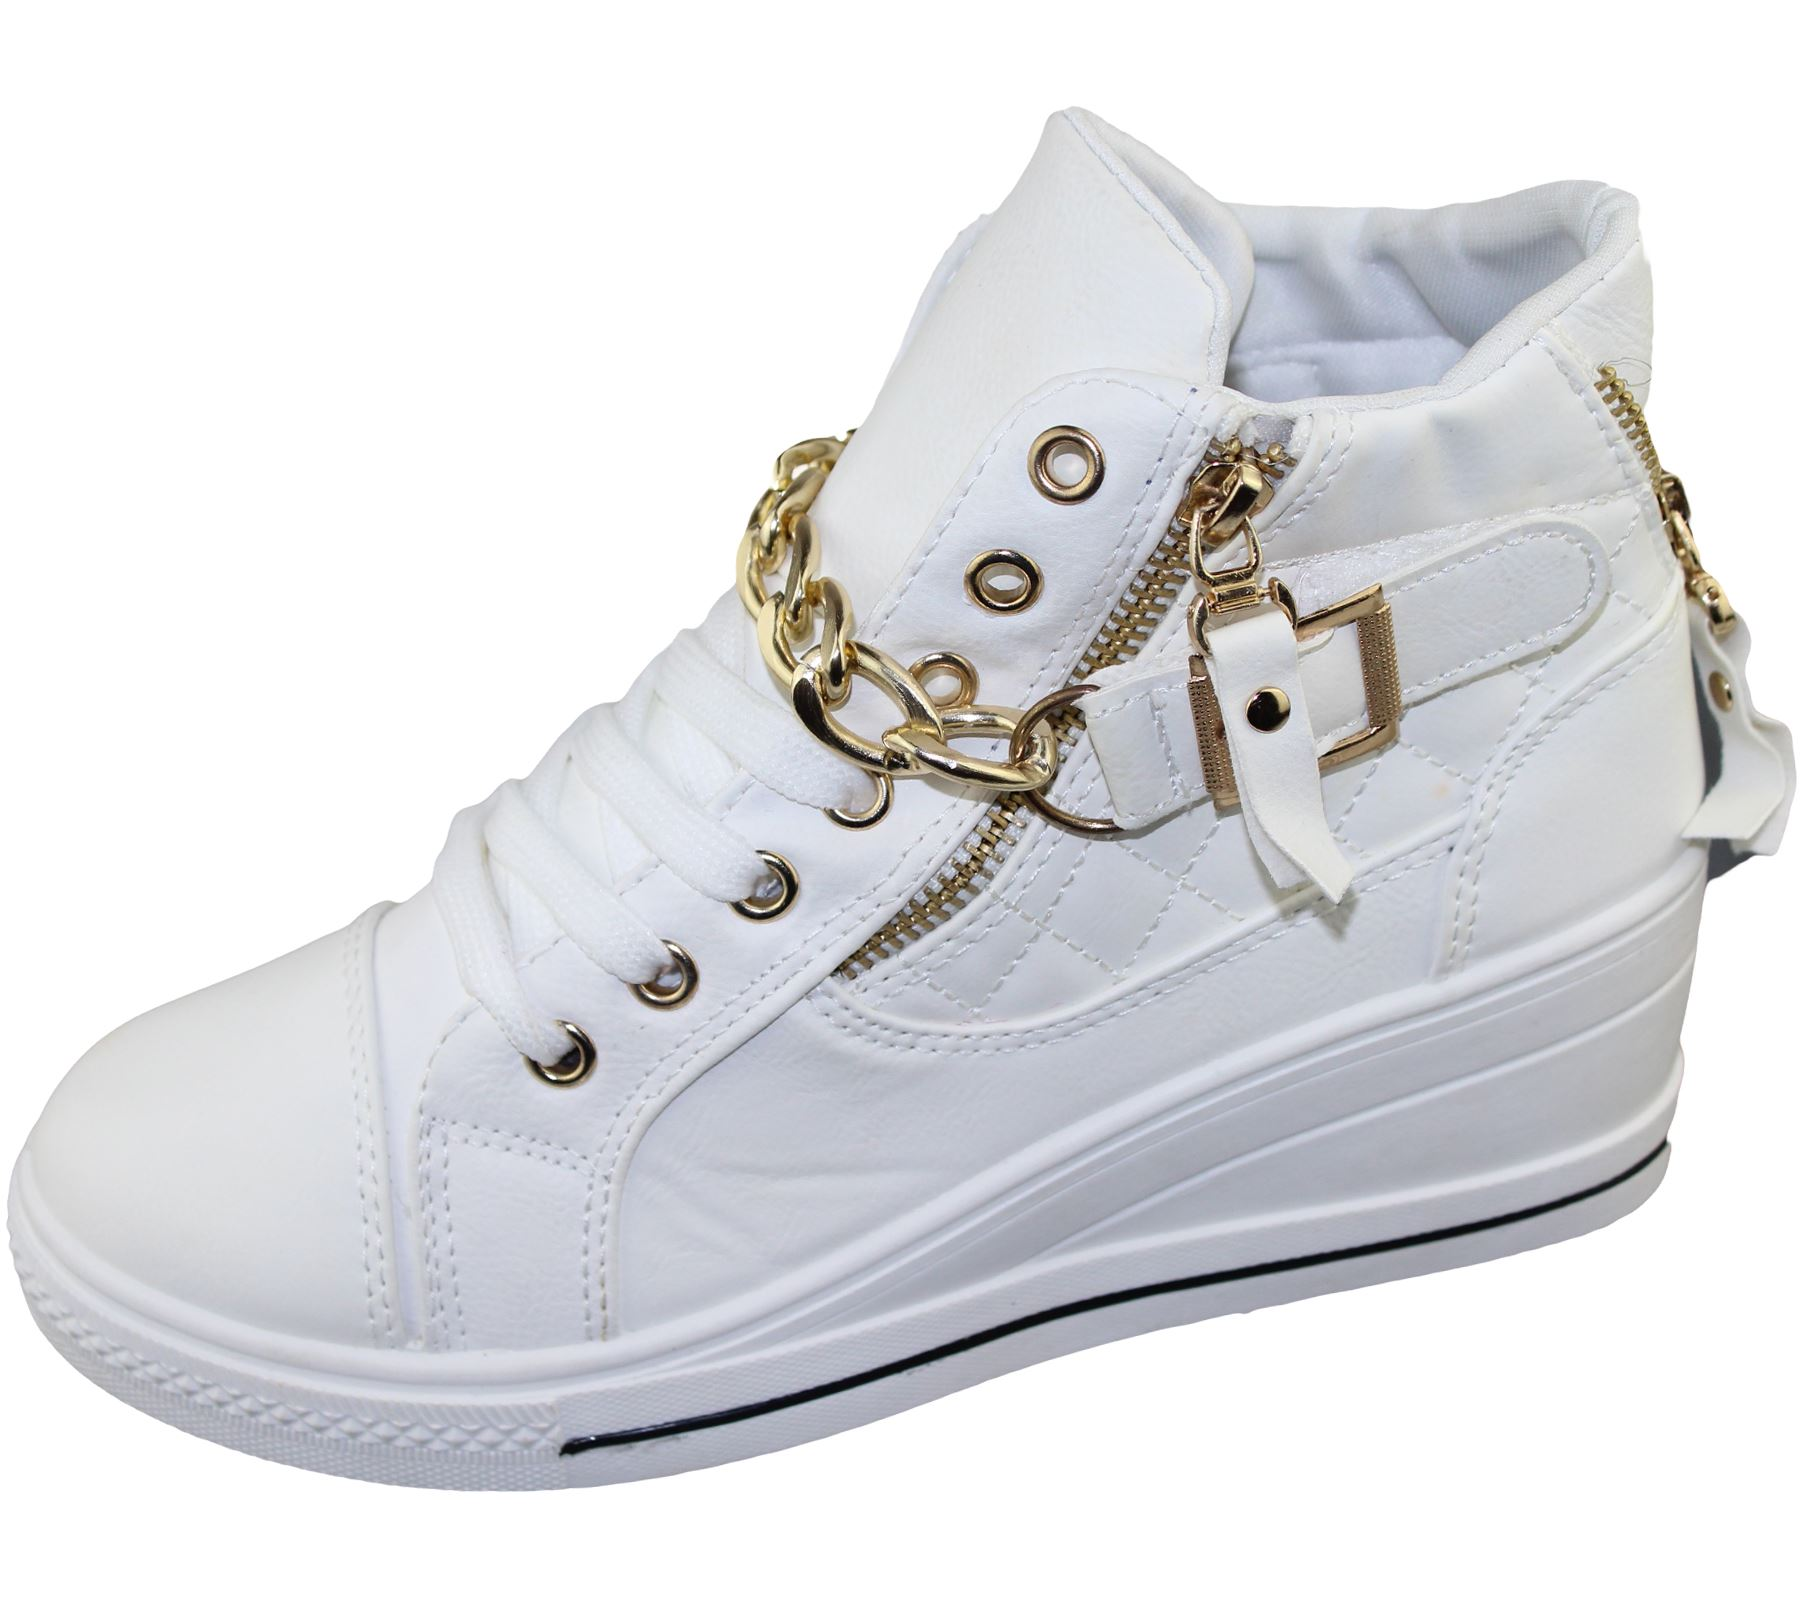 Womens Wedge Trainers Ladies Quilted Ankle Boots Sneakers ...